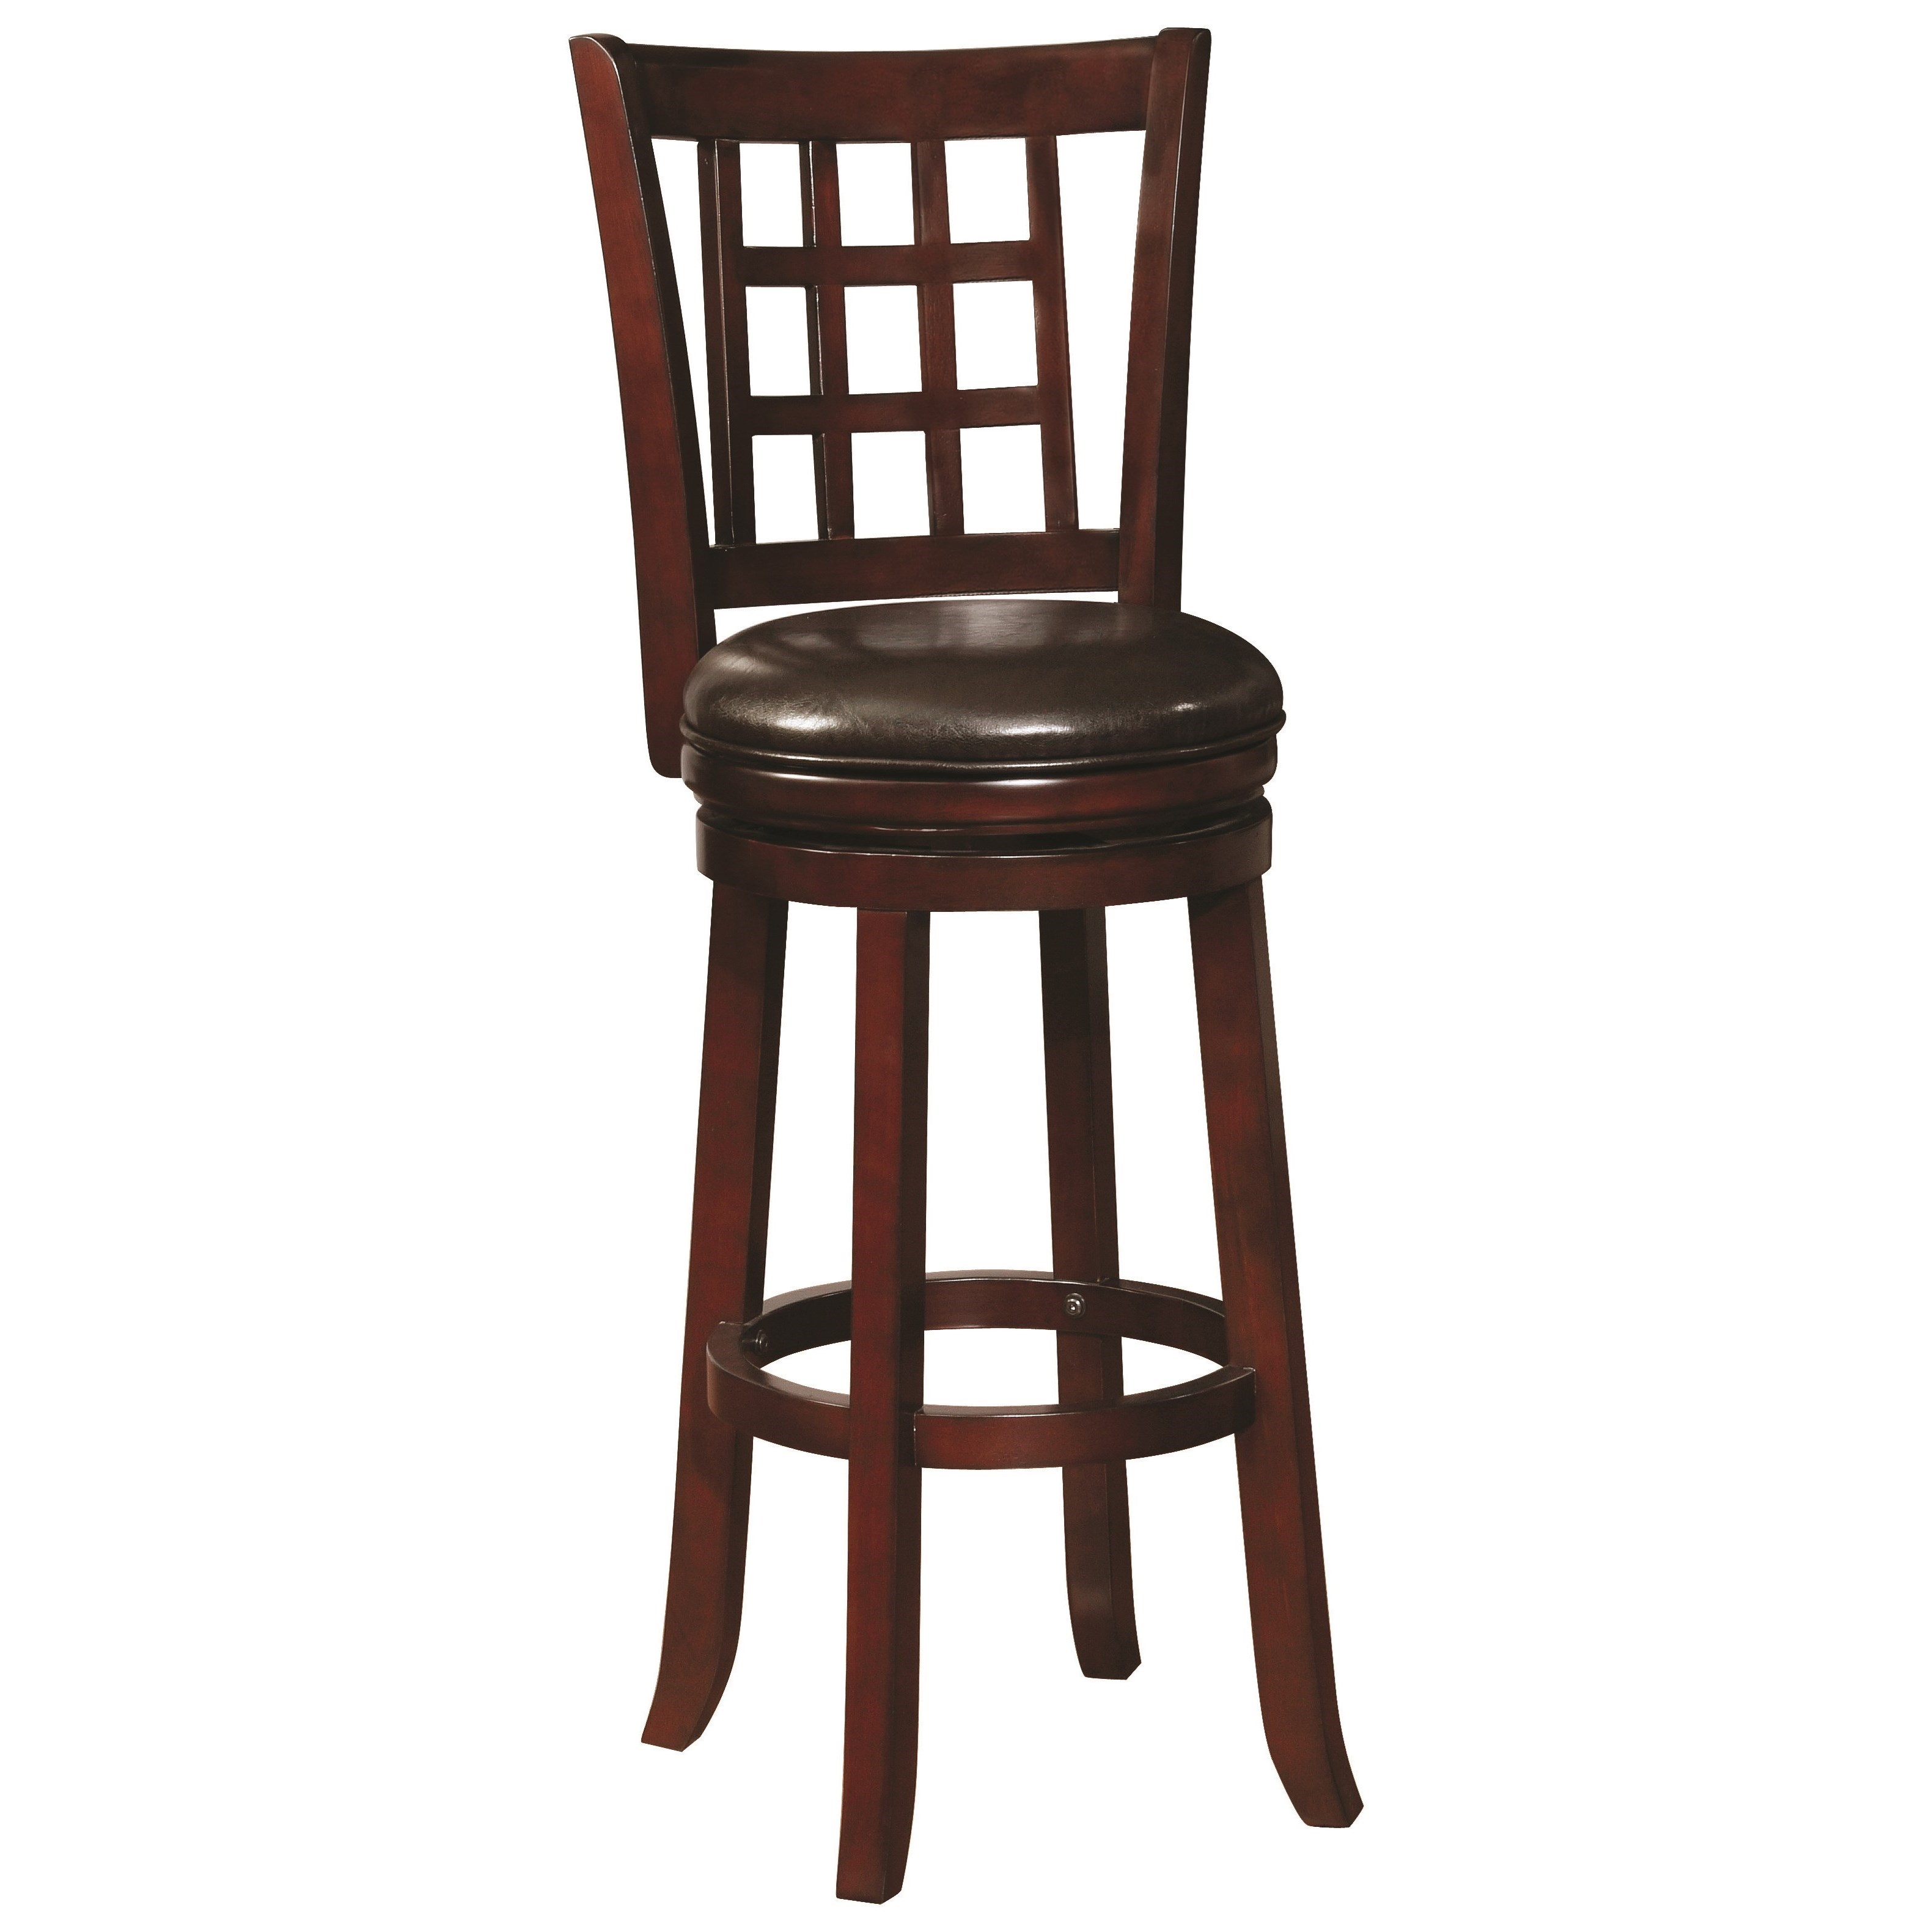 Coaster Dining Chairs and Bar Stools Barstool - Item Number: 182027